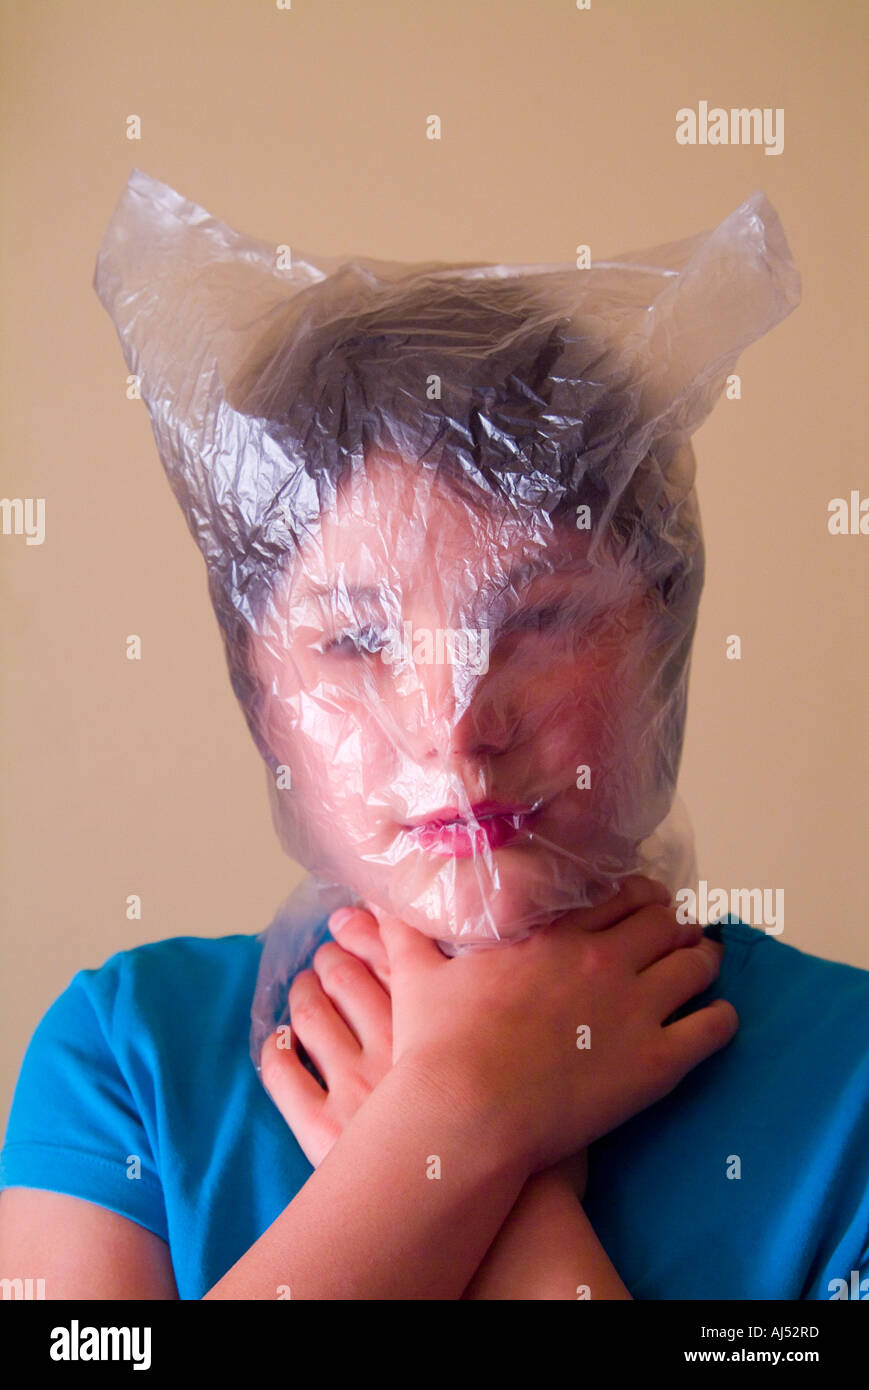 Young girl with head in a plastic bag - Stock Image